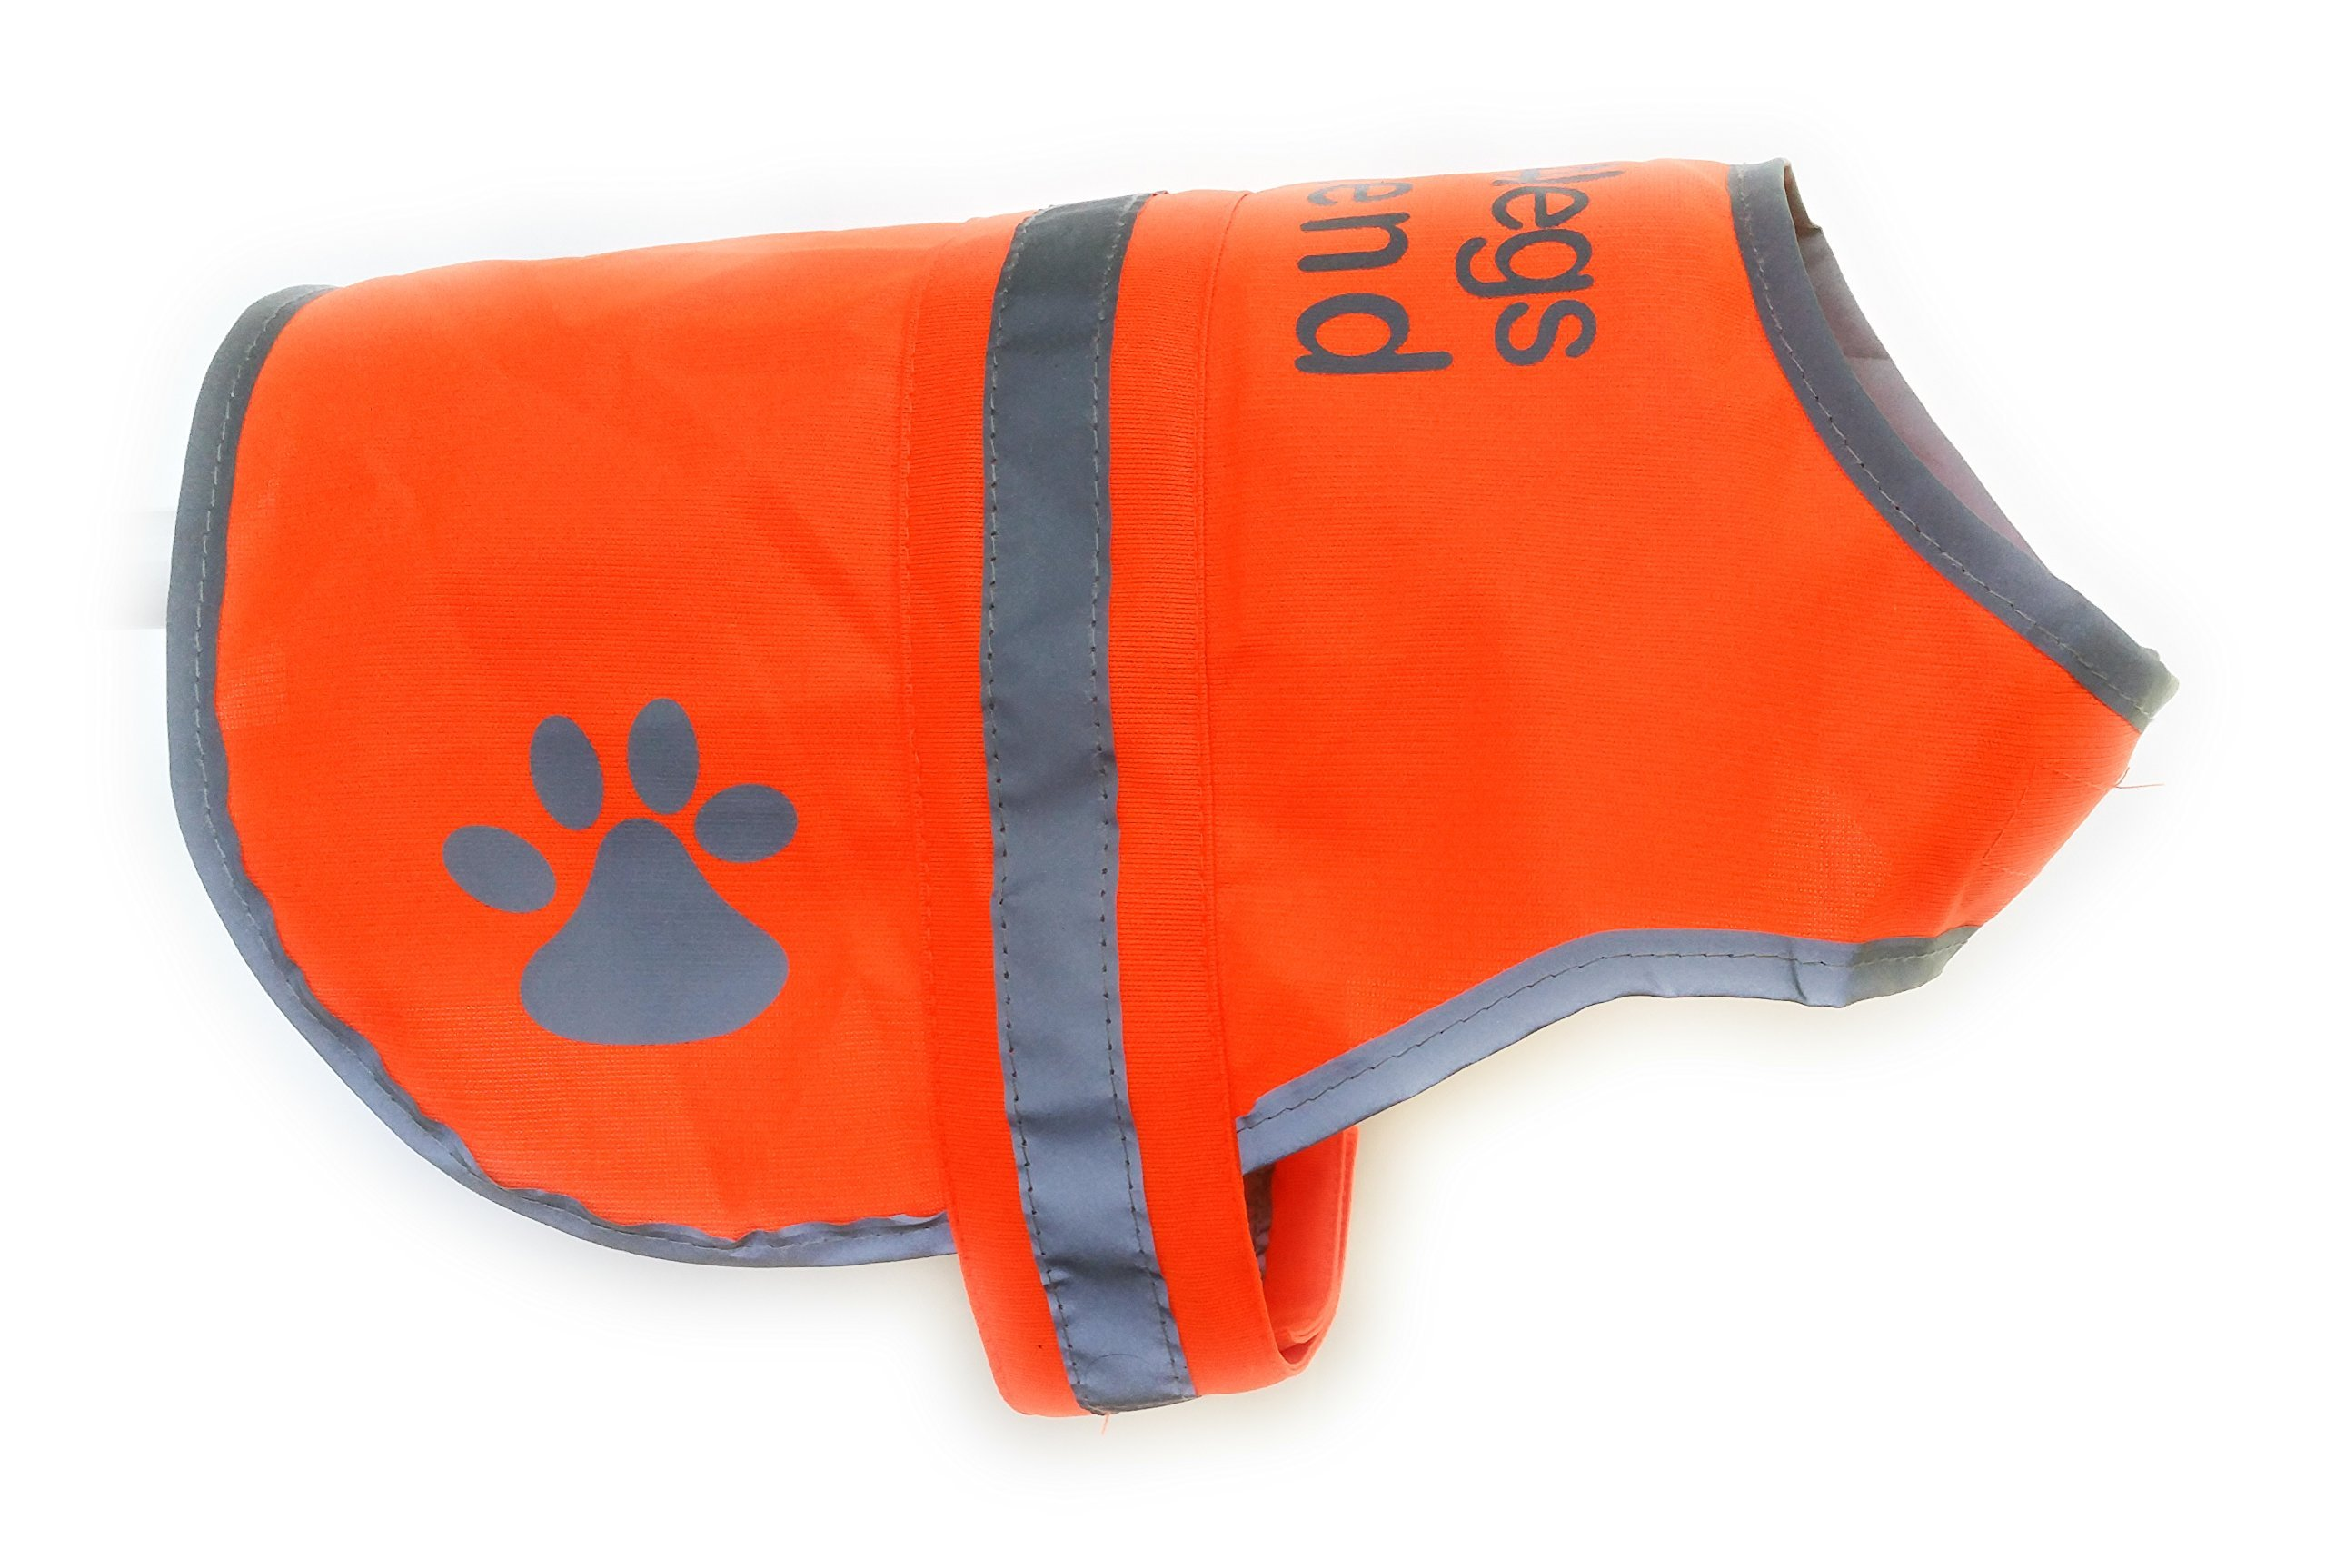 XL Safety Reflective Dog Vest (5 Sizes, X-Large, 85-130 lb) - High Visibility for Outdoor Activity Day and Night, Keep Your Dog, Visible & Safe From Cars & Hunting Accidents   Blaze Orange